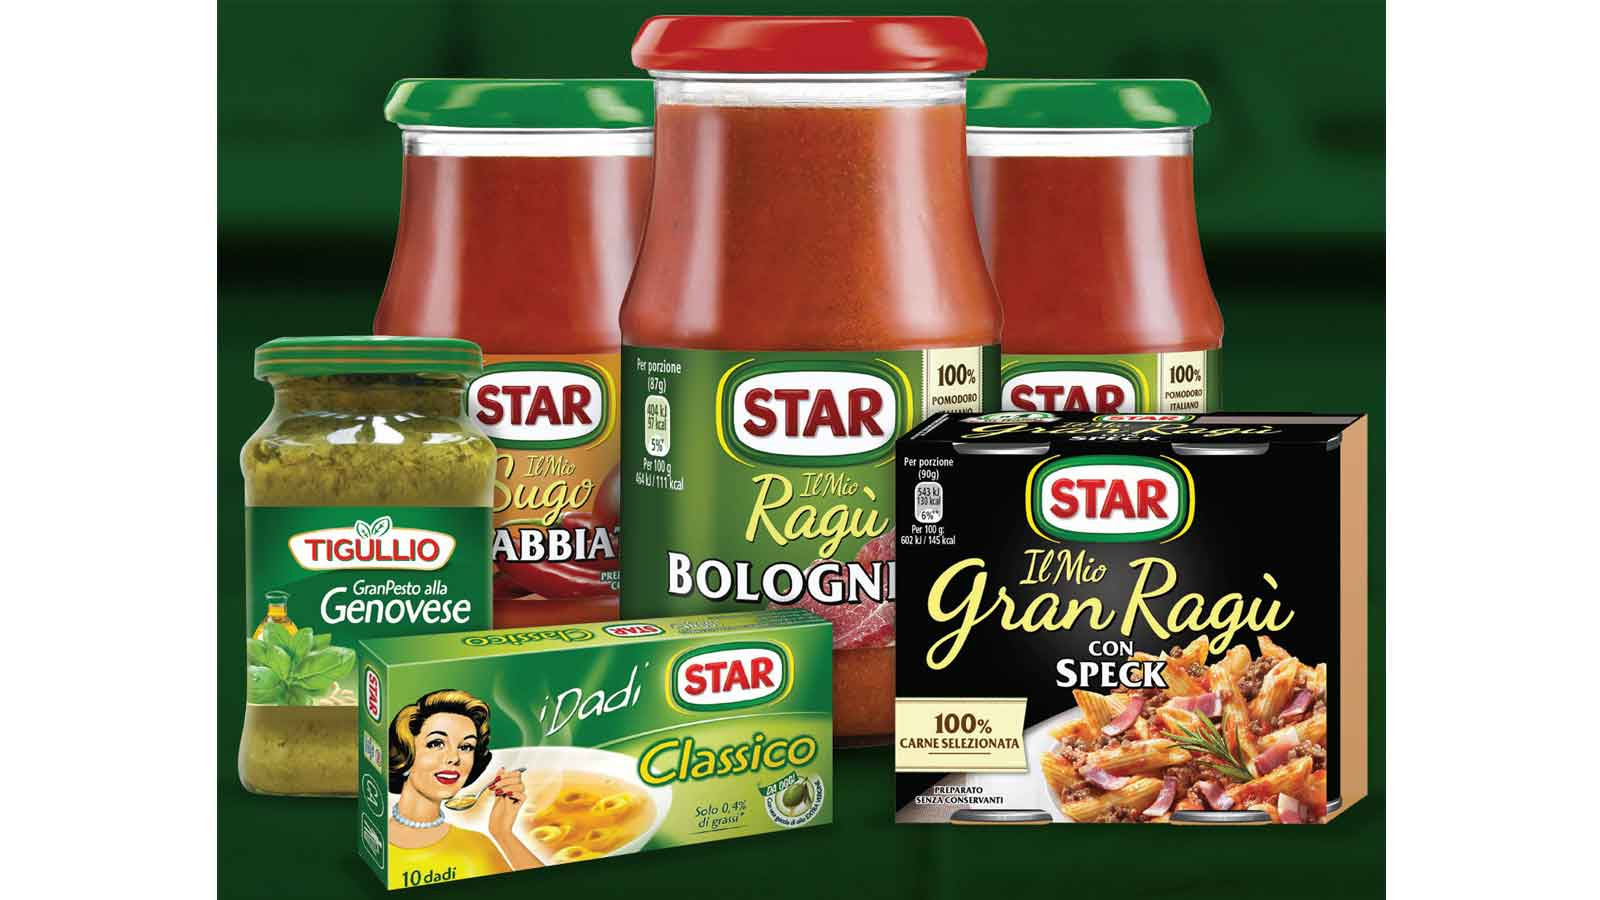 Quintano Foods adds Star brand to its portfolio